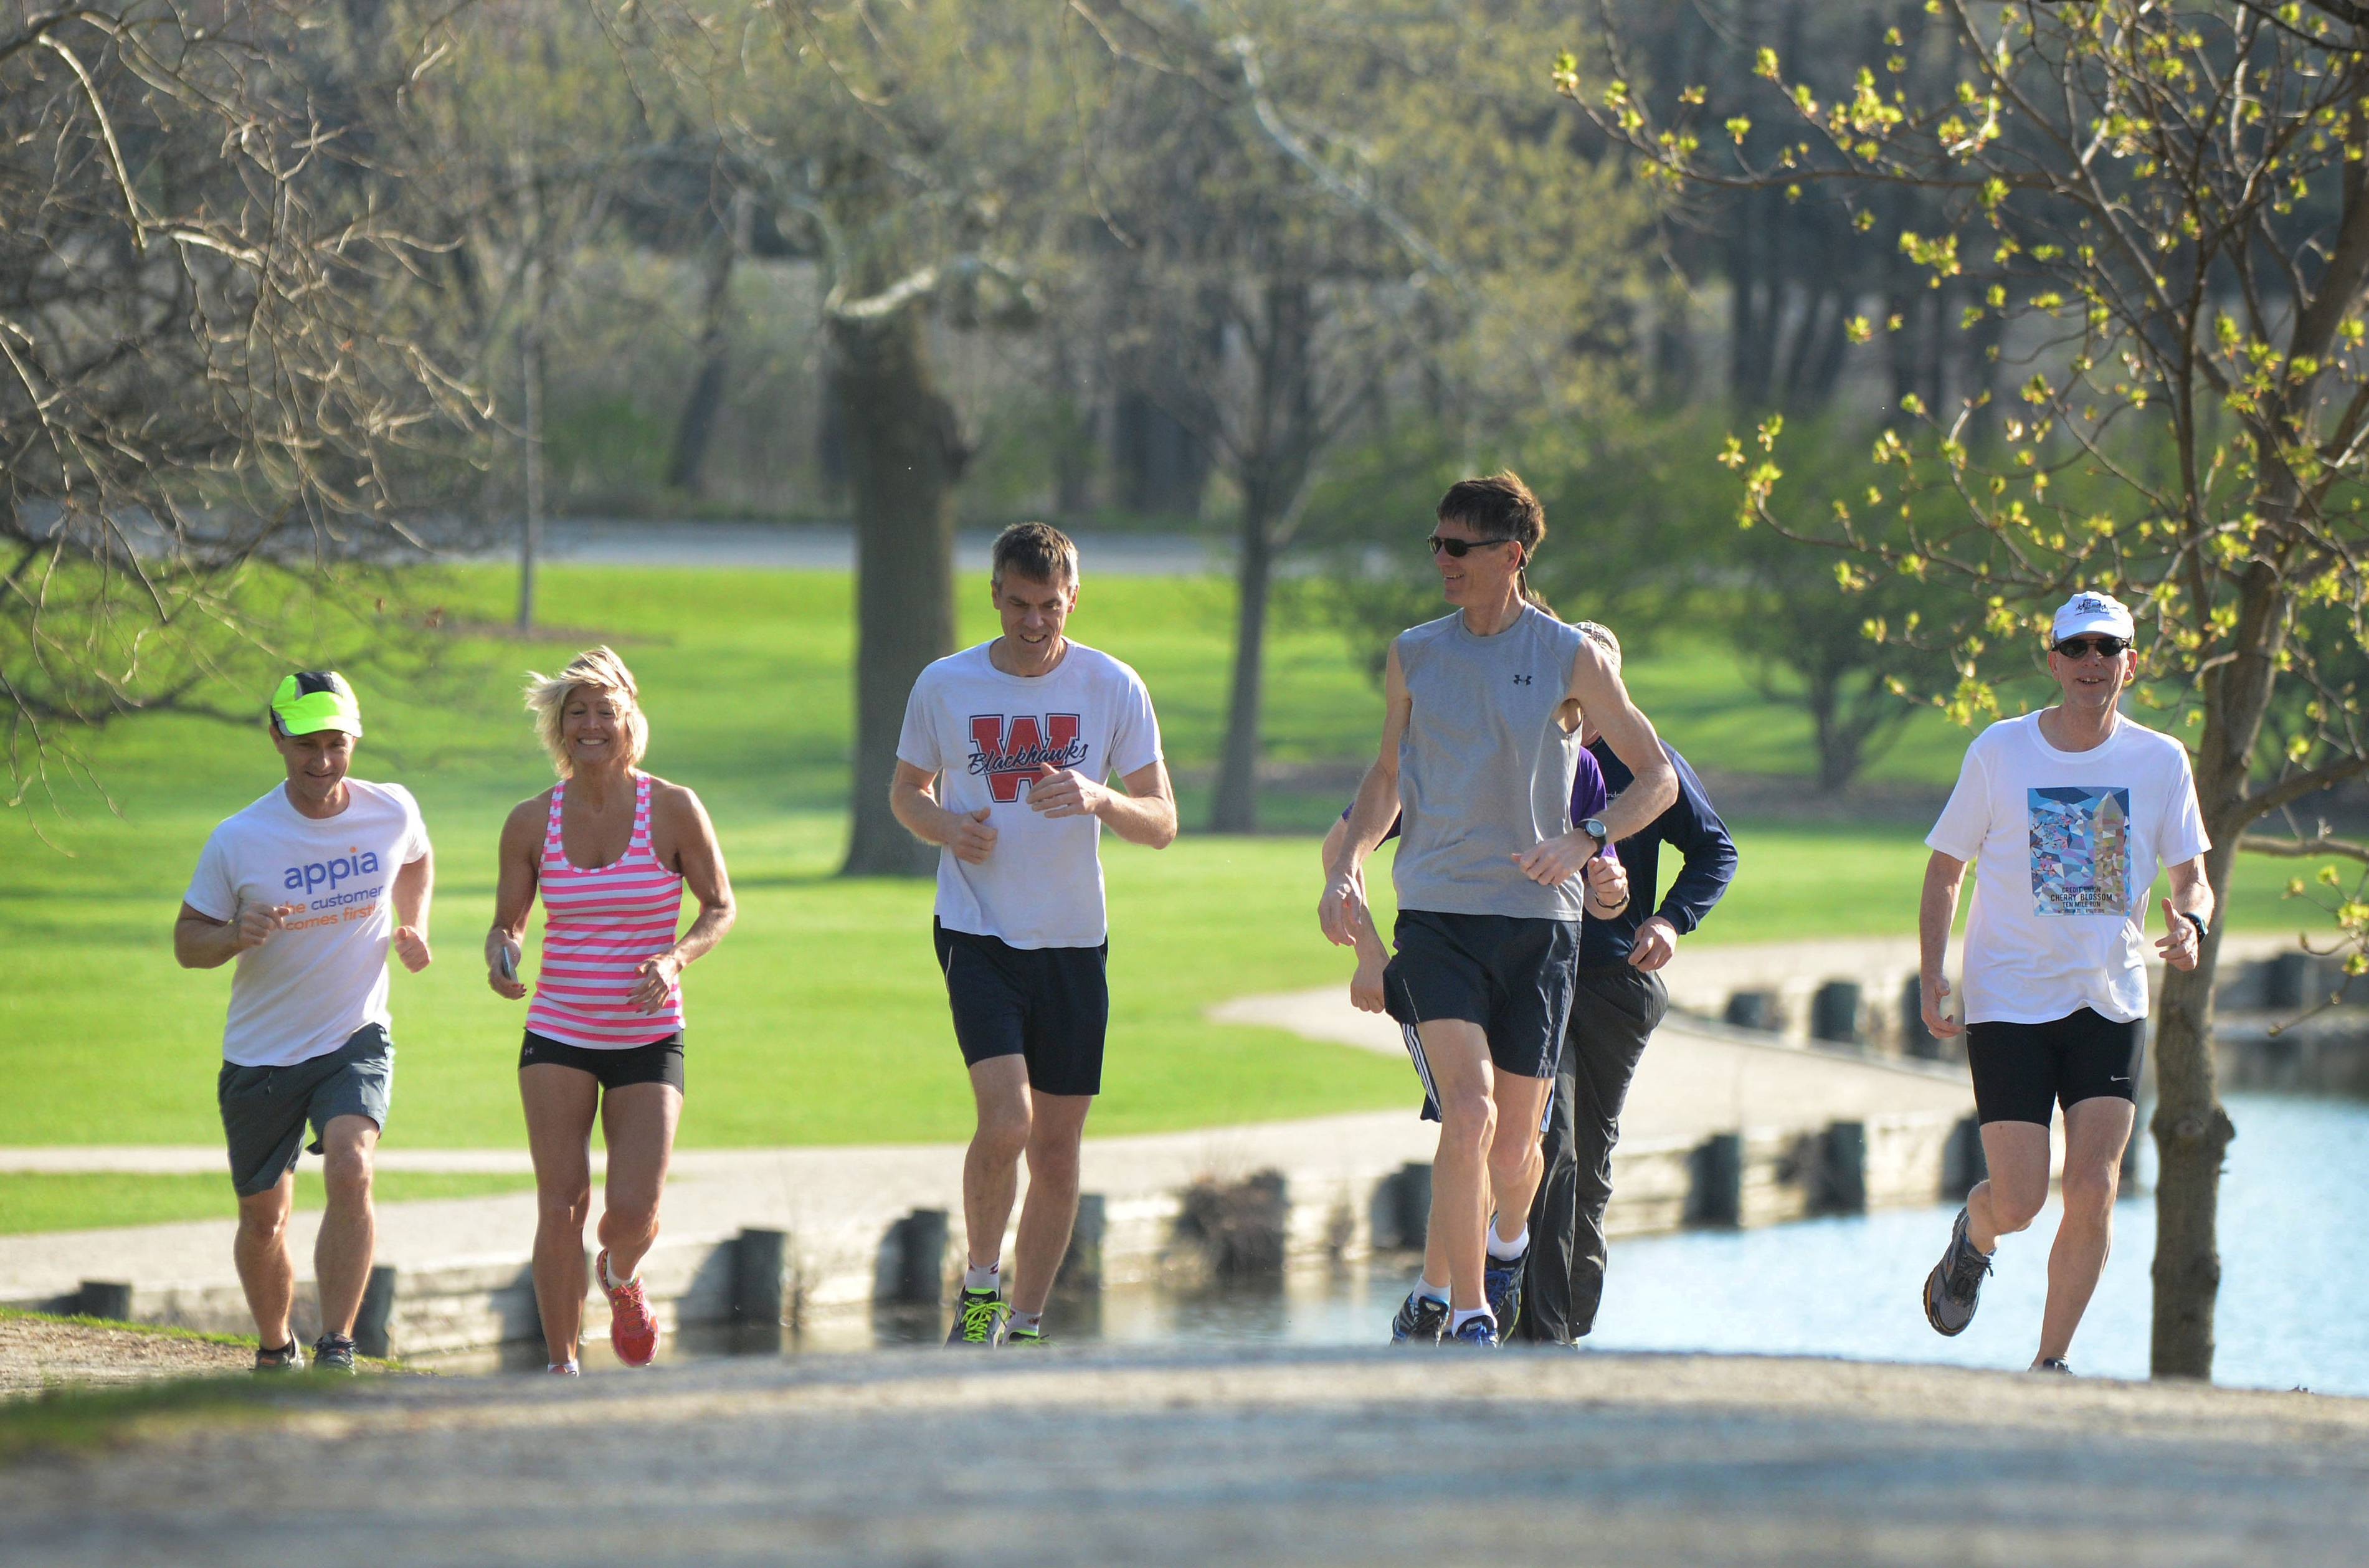 The Lisle Windrunners running club is sending two eight-person teams to compete today in the Illinois River to River Relay race in southern Illinois. Last week, members of the club trained for the relay by running 10 miles at Herrick Lake Forest Preserve near Wheaton.